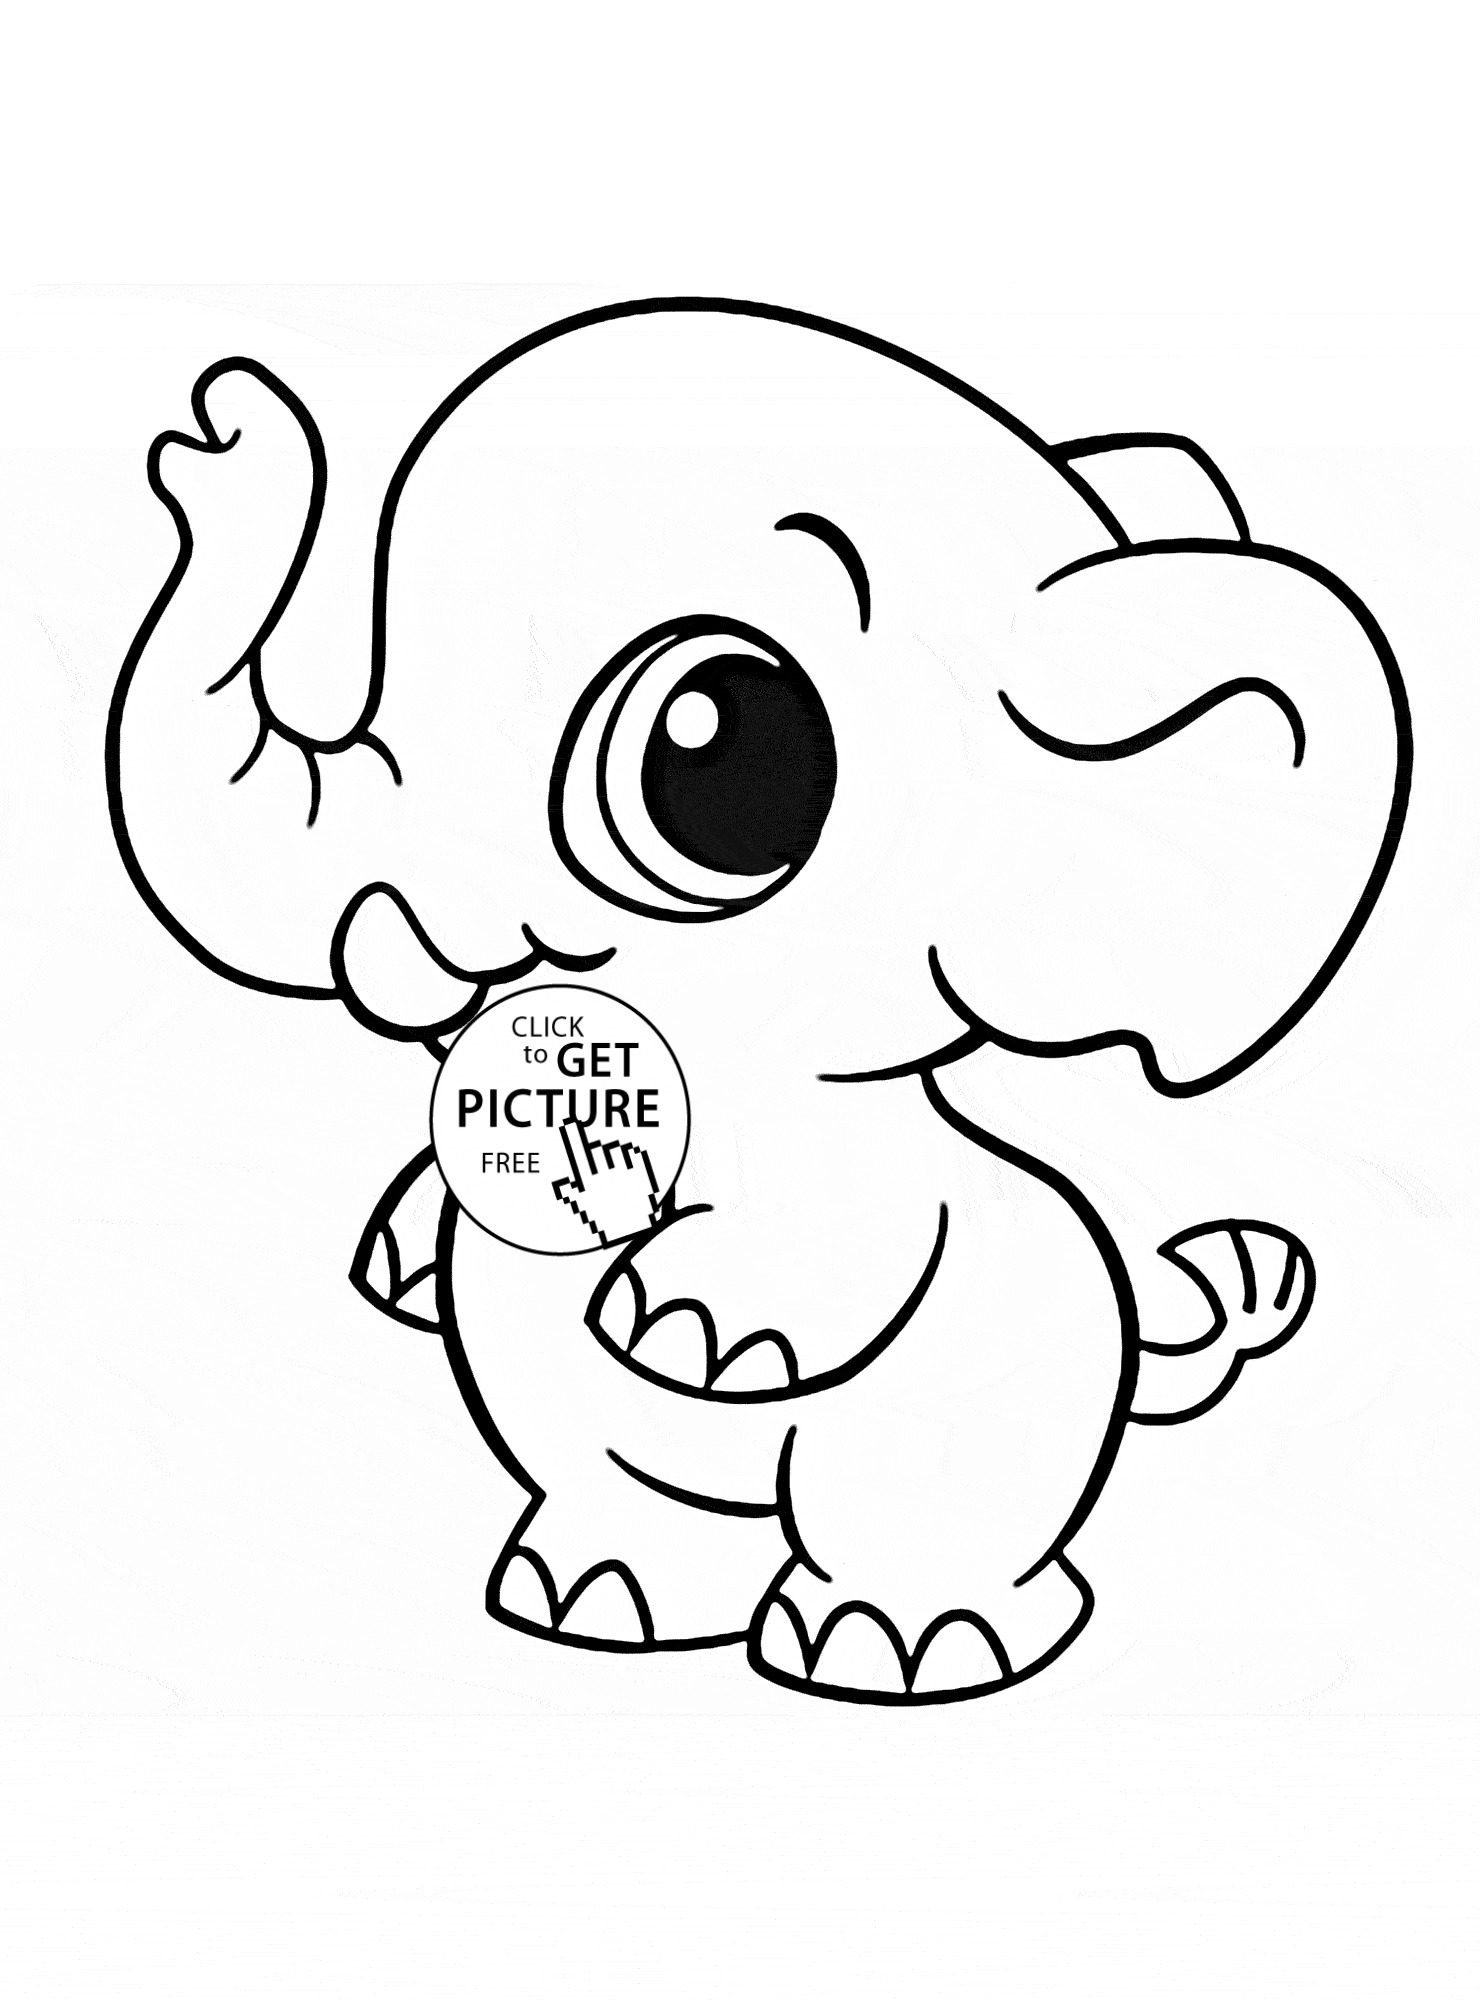 21 Coloring Pages To Print For Kids Download Coloring Sheets